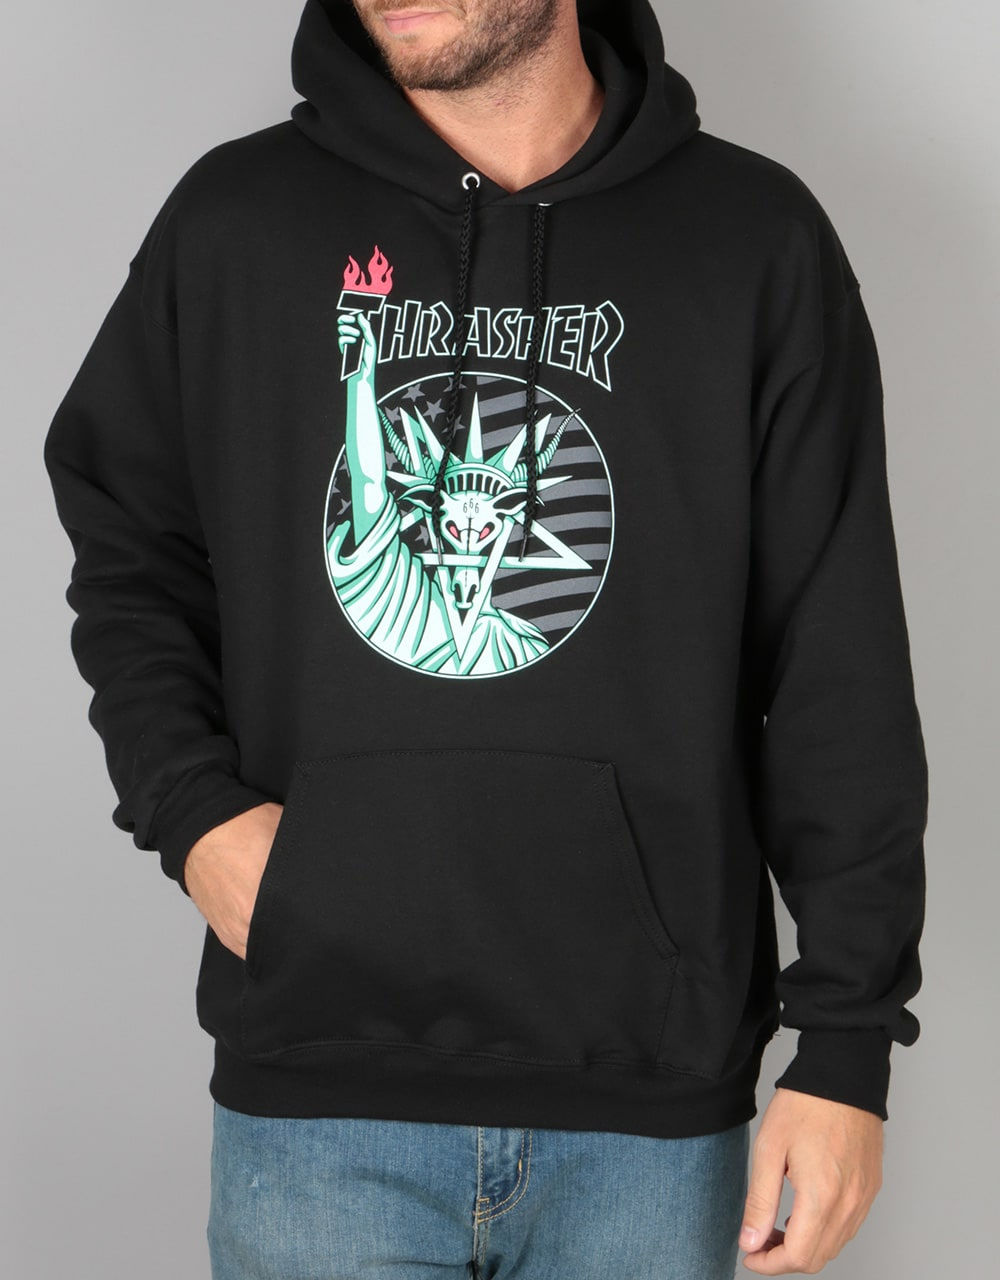 Thrasher Liberty Goat Pullover Hoodie - Black | Skate Pullover Hoodies | Mens Hoodies | Clothing ...